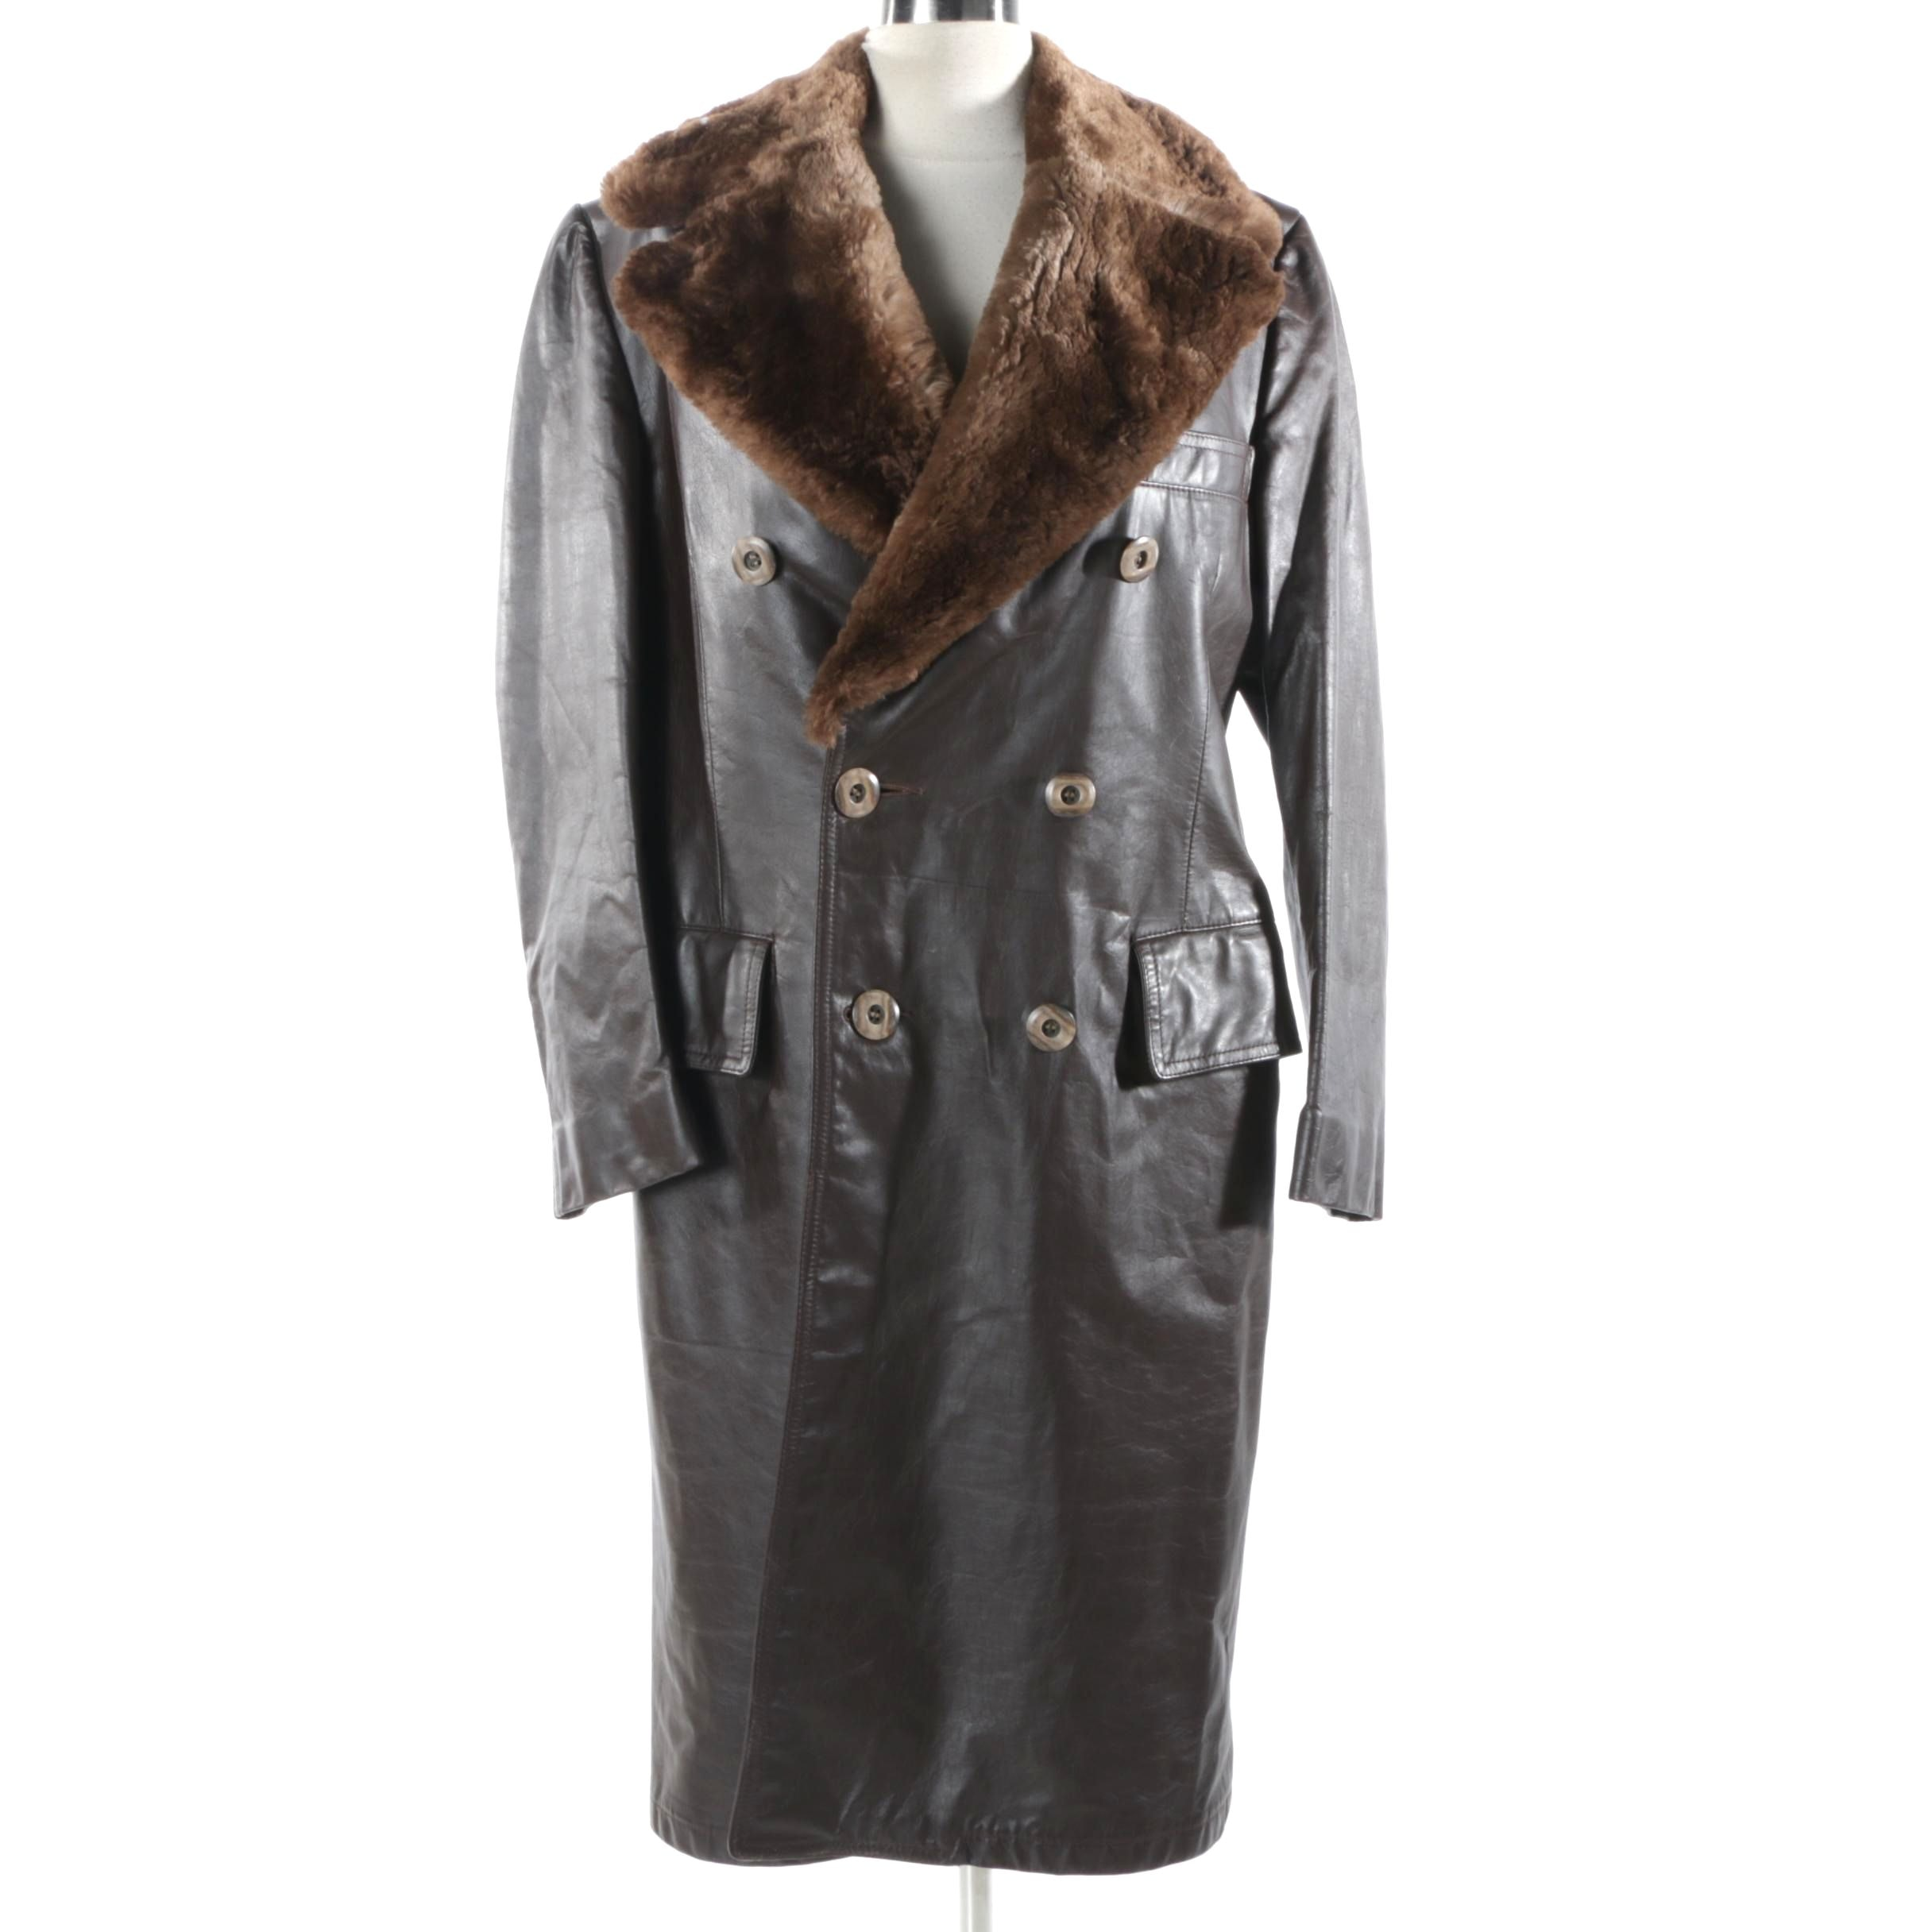 Men's Vintage Brown Leather Coat with Sheared Beaver Fur Collar